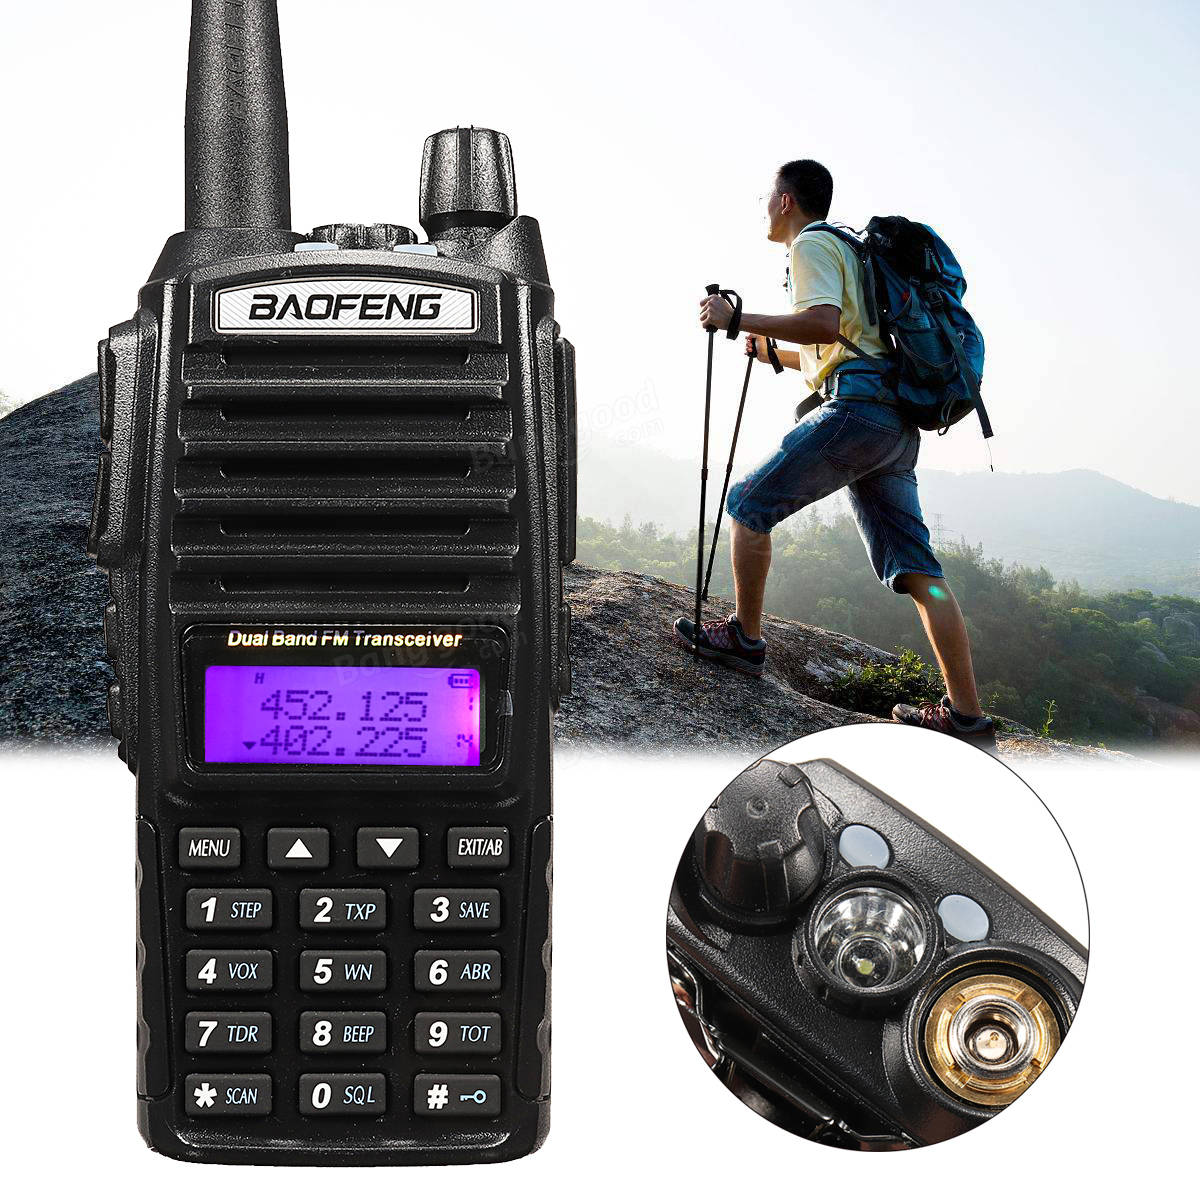 BaoFeng UV-82HP Portable High Power Dual Band Radio Walkie Talkie